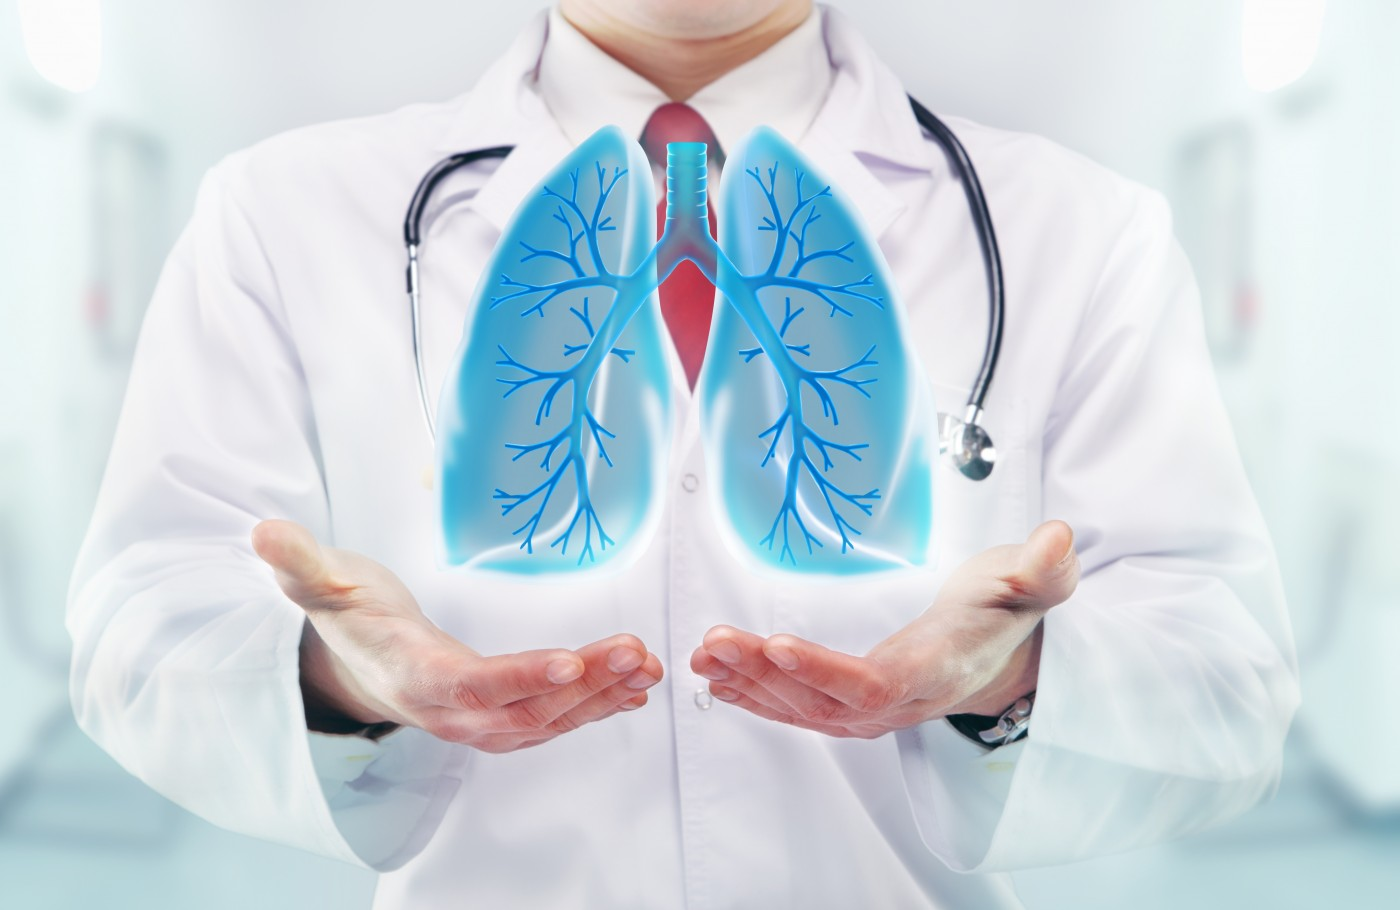 Study Suggests a Link Between Mitochondrial Dysfunction in Leukocytes and Chronic Obstructive Pulmonary Disease (COPD)